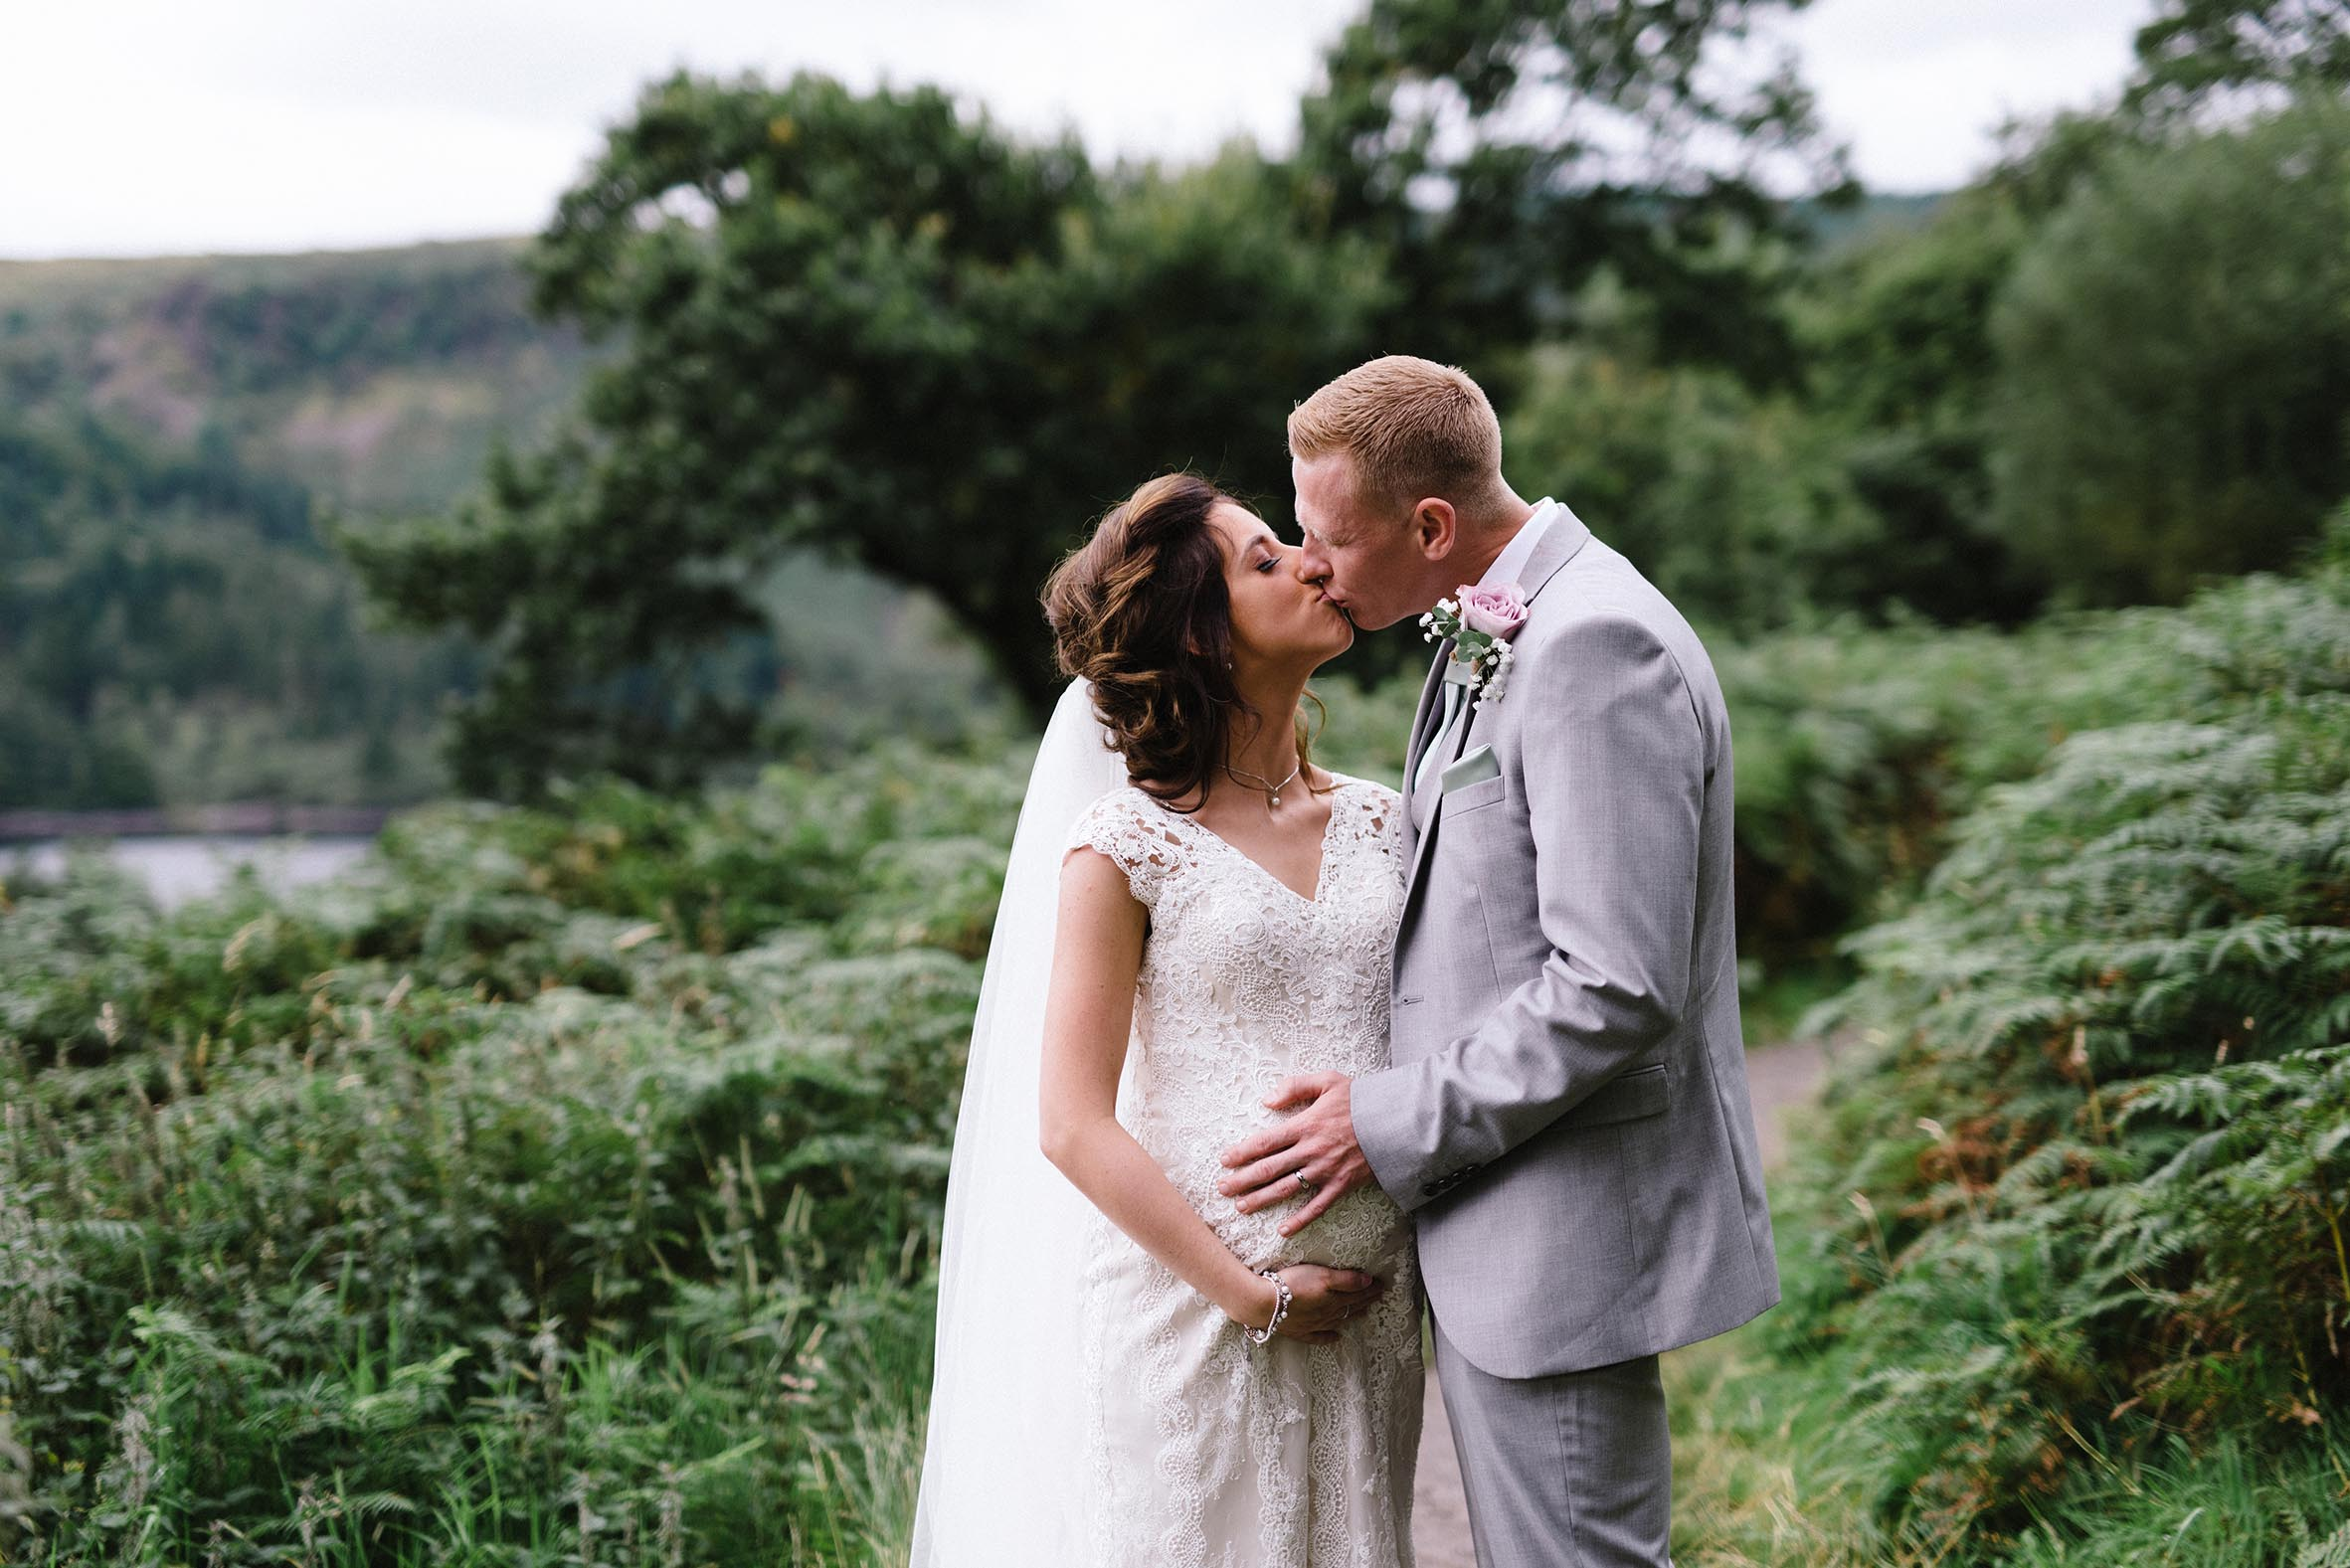 Weddings By Bethany Sunners bethanysunnersphotography (14).jpg